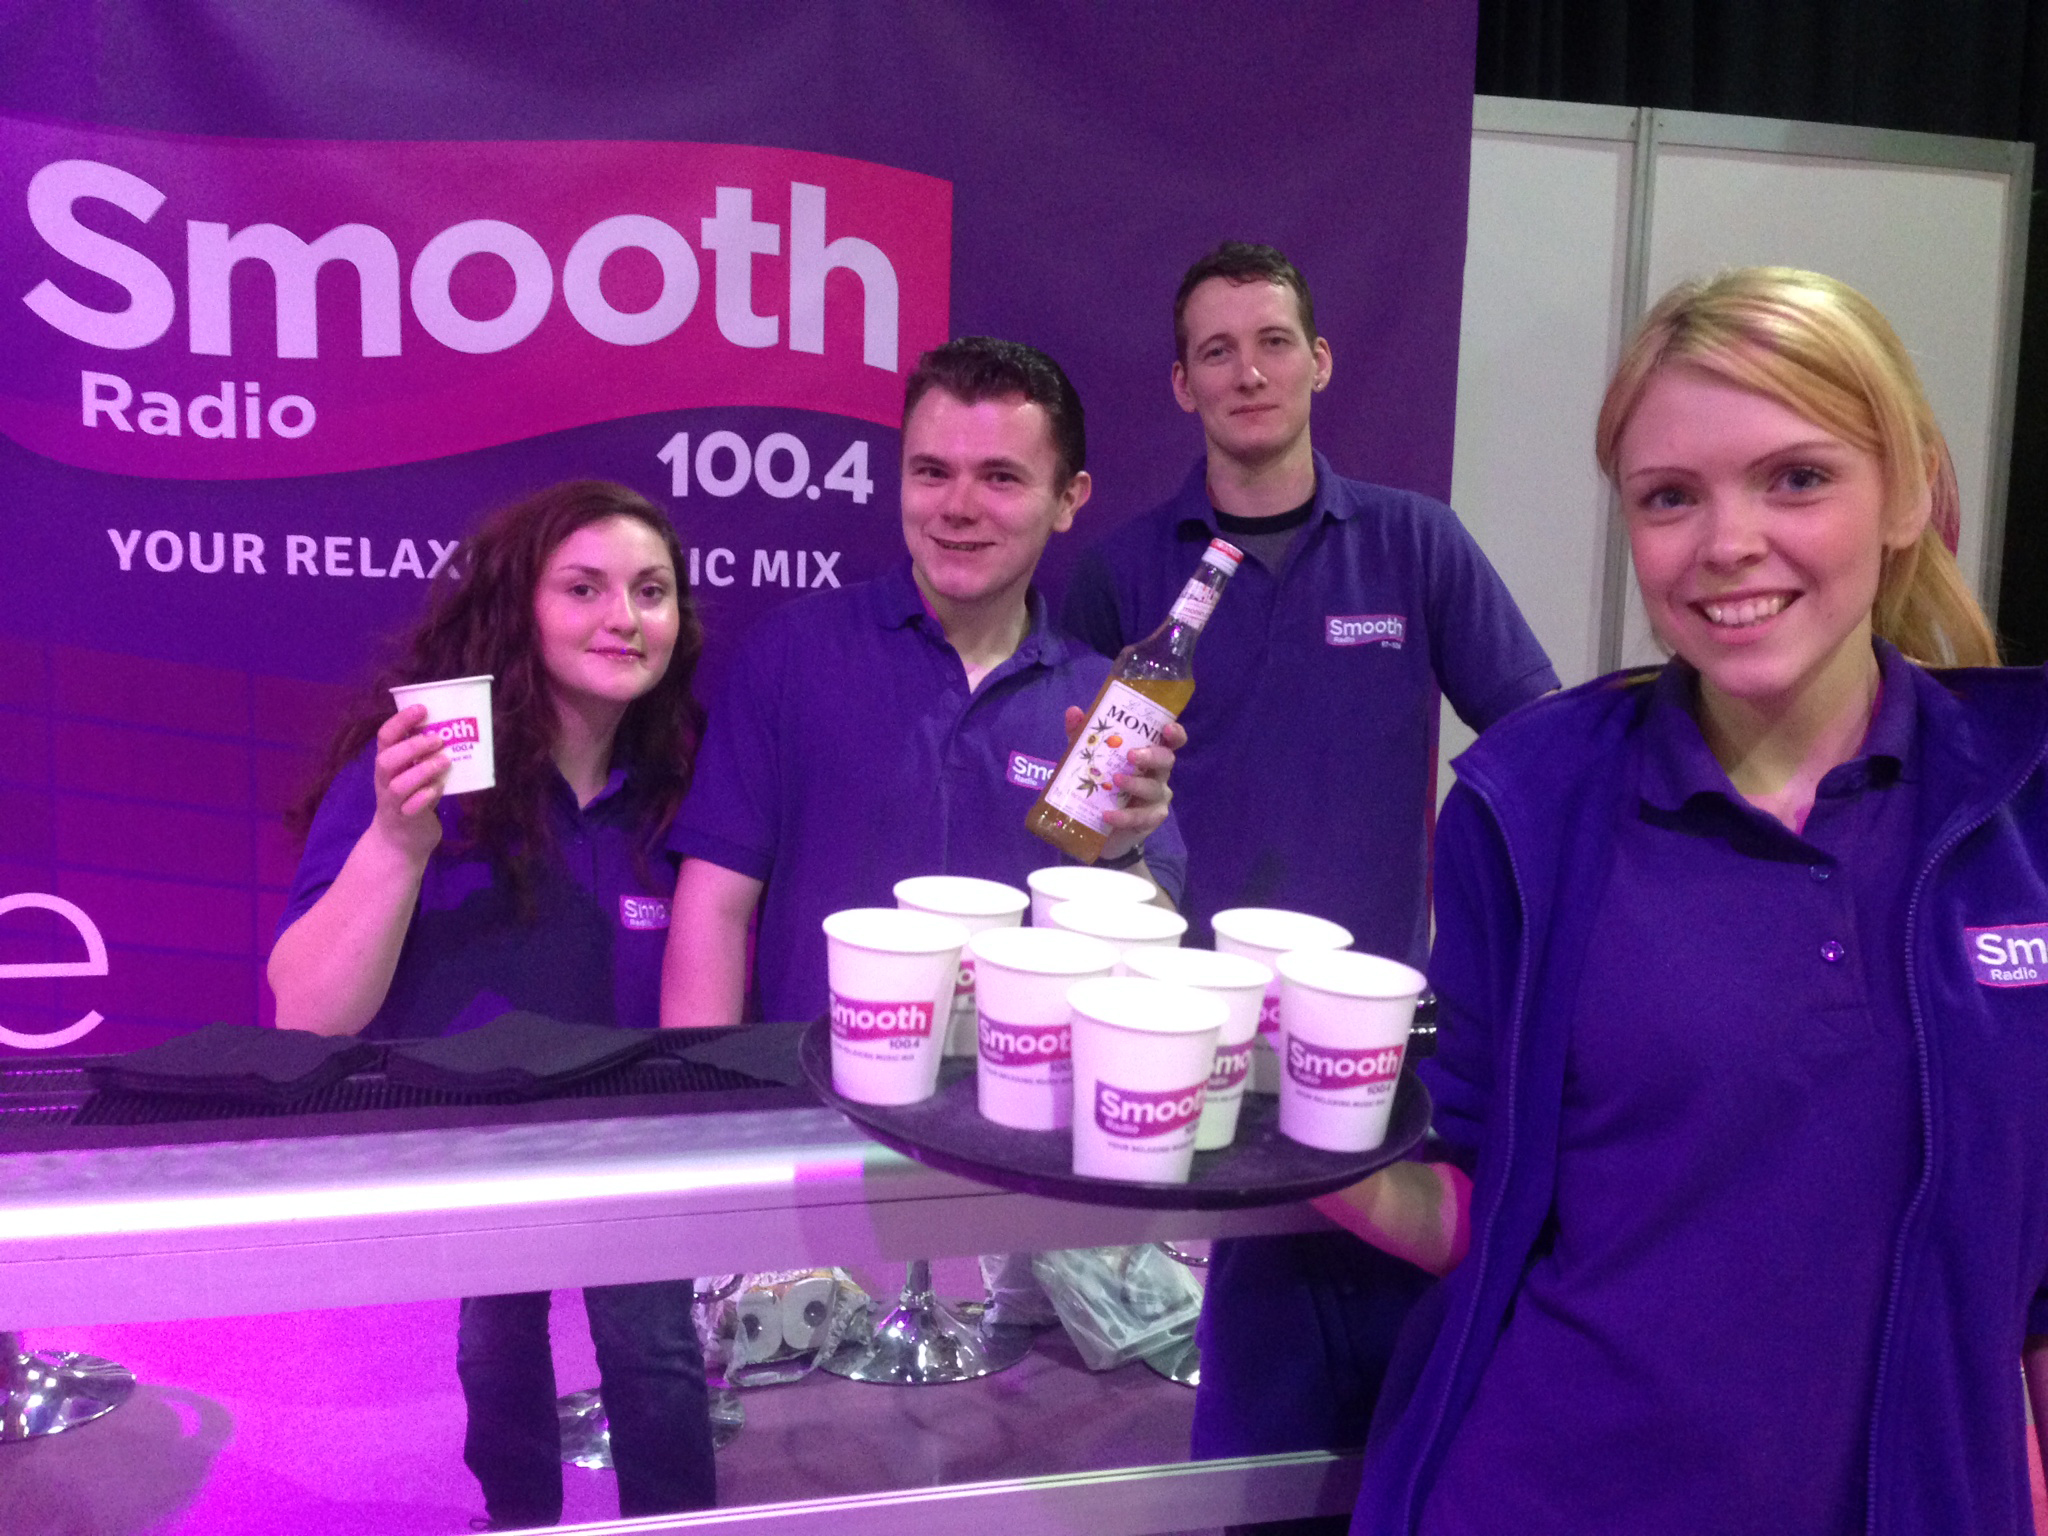 Our Smooth Crew hand out Smoothies